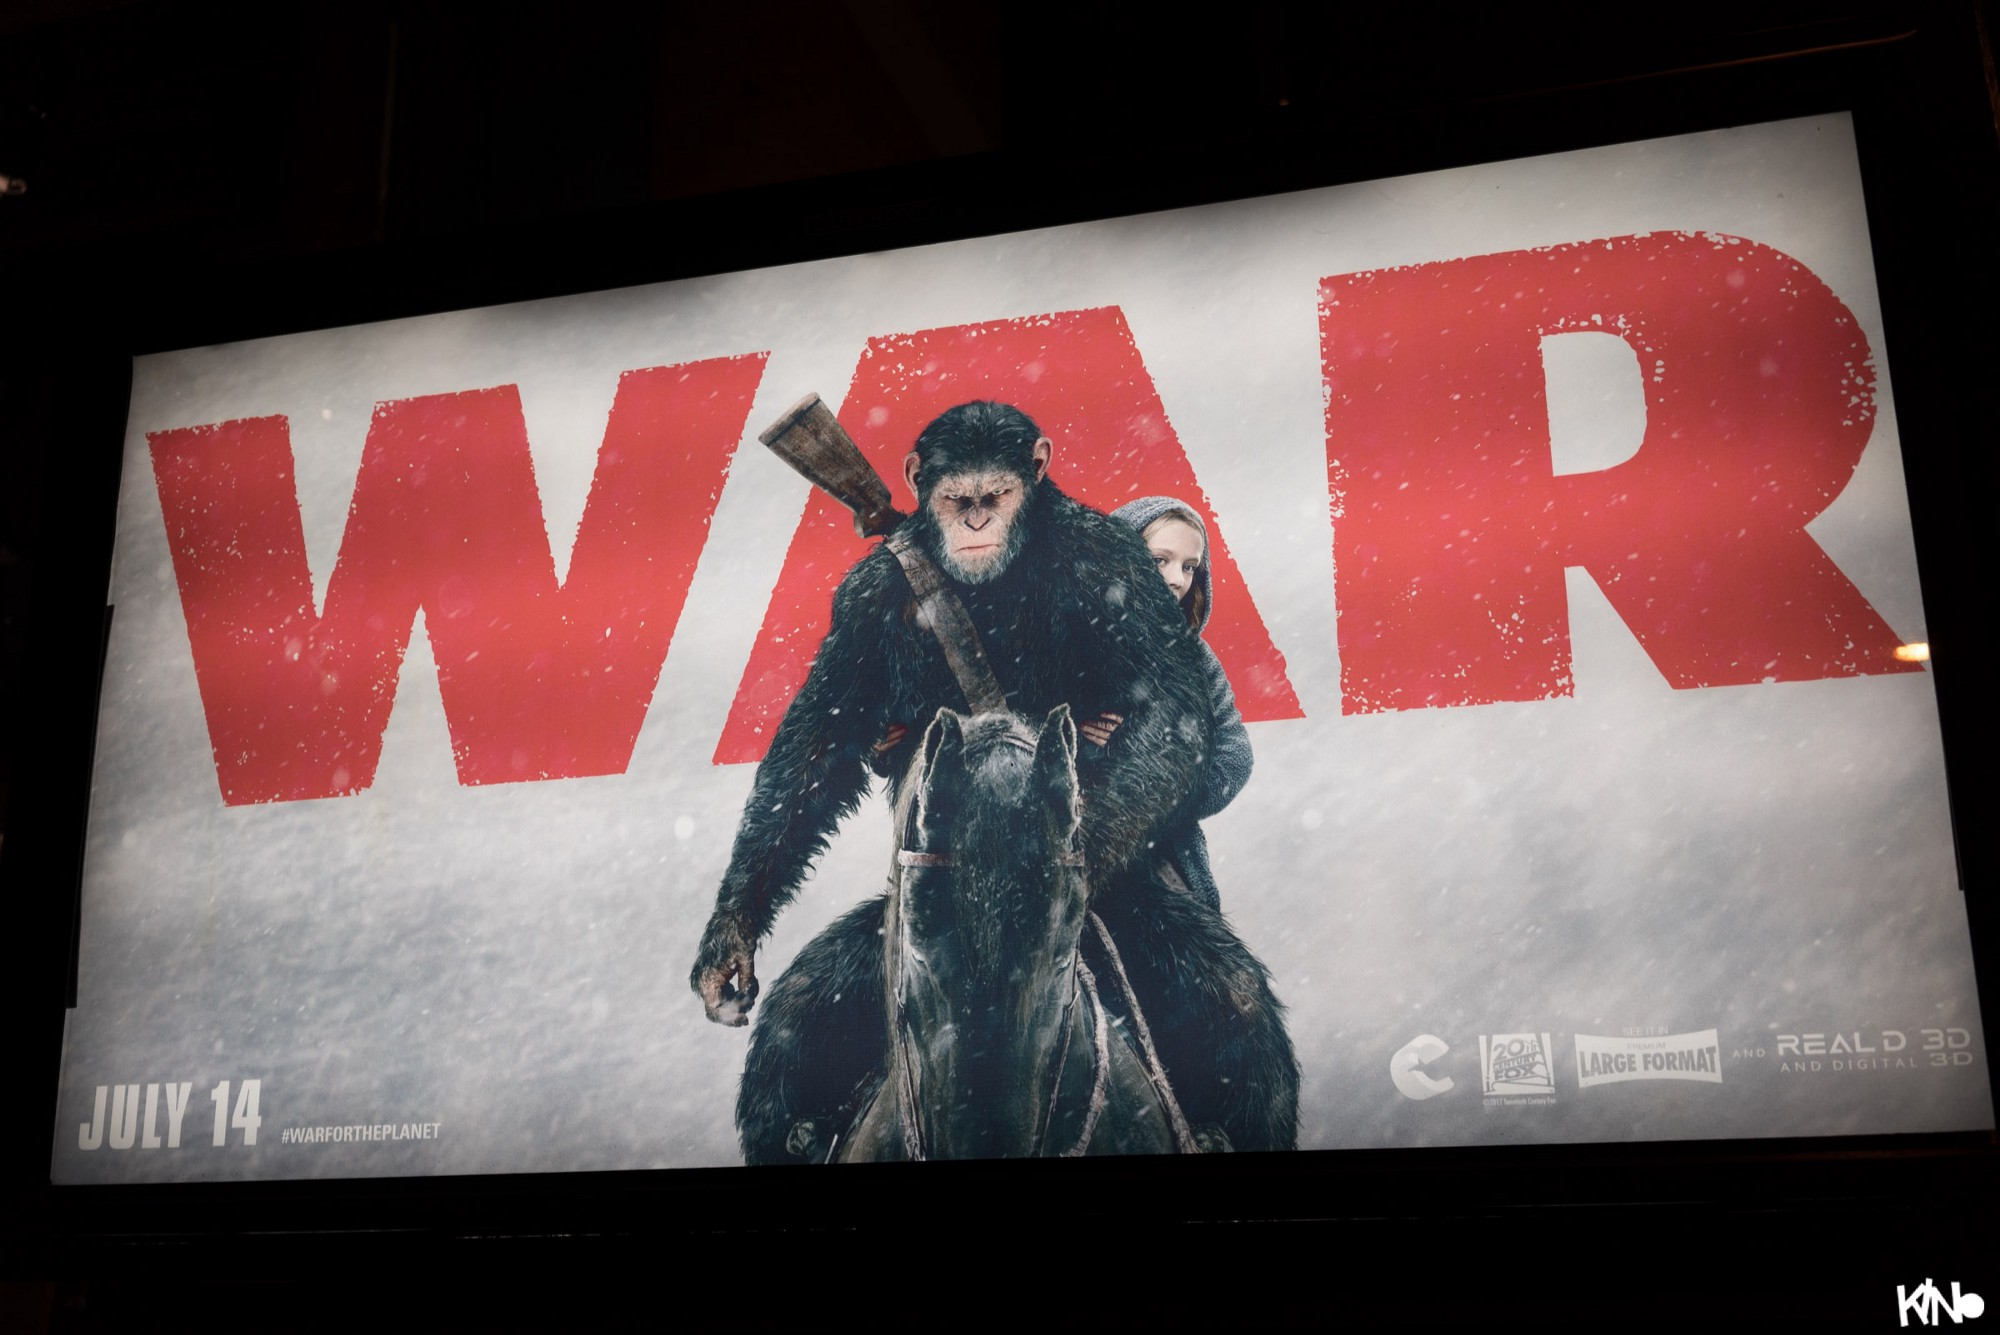 Planet of the Apes, War, Poster, NYC